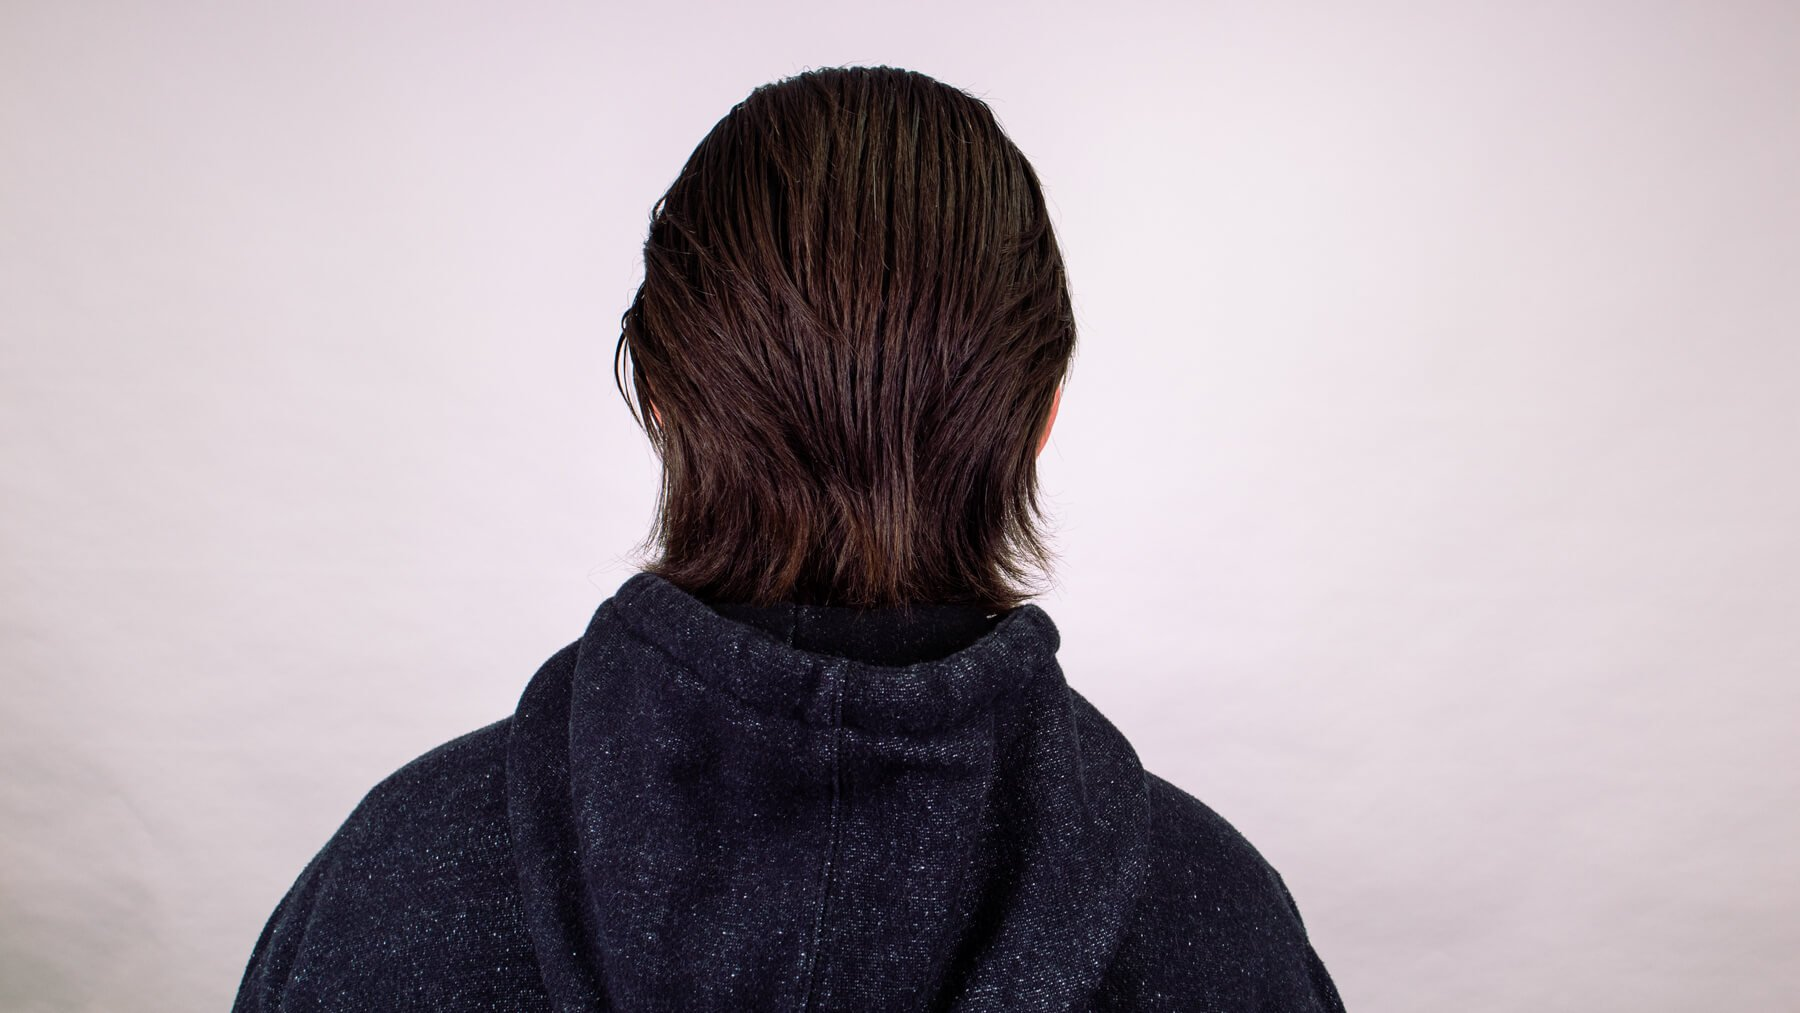 Brushed back awkward stage hairstyle back view